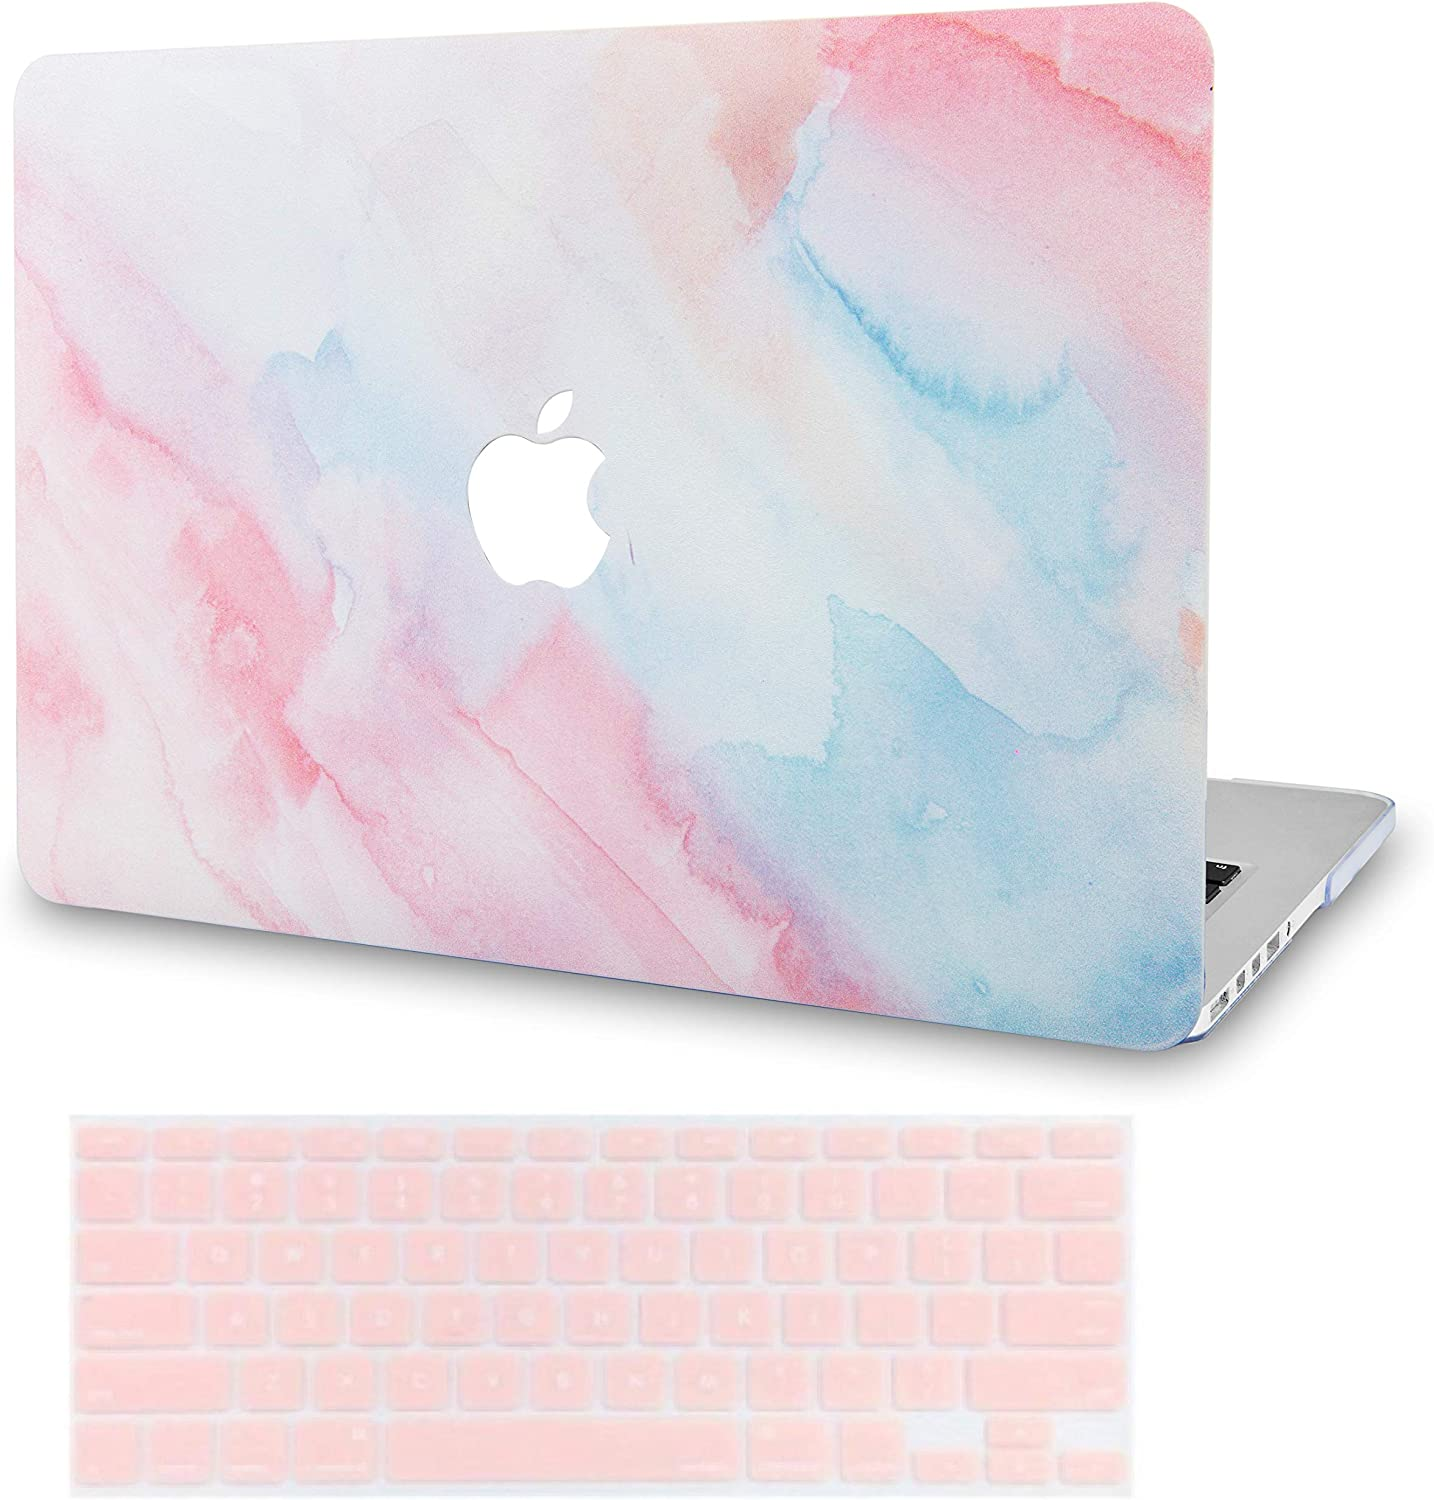 LuvCase 2 in 1 Laptop Case for MacBook Air 13 Inch (2018-2020) (Touch ID) A1932 Retina Display Rubberized Plastic Hard Shell Cover & Keyboard Cover (Pale Pink Mist)